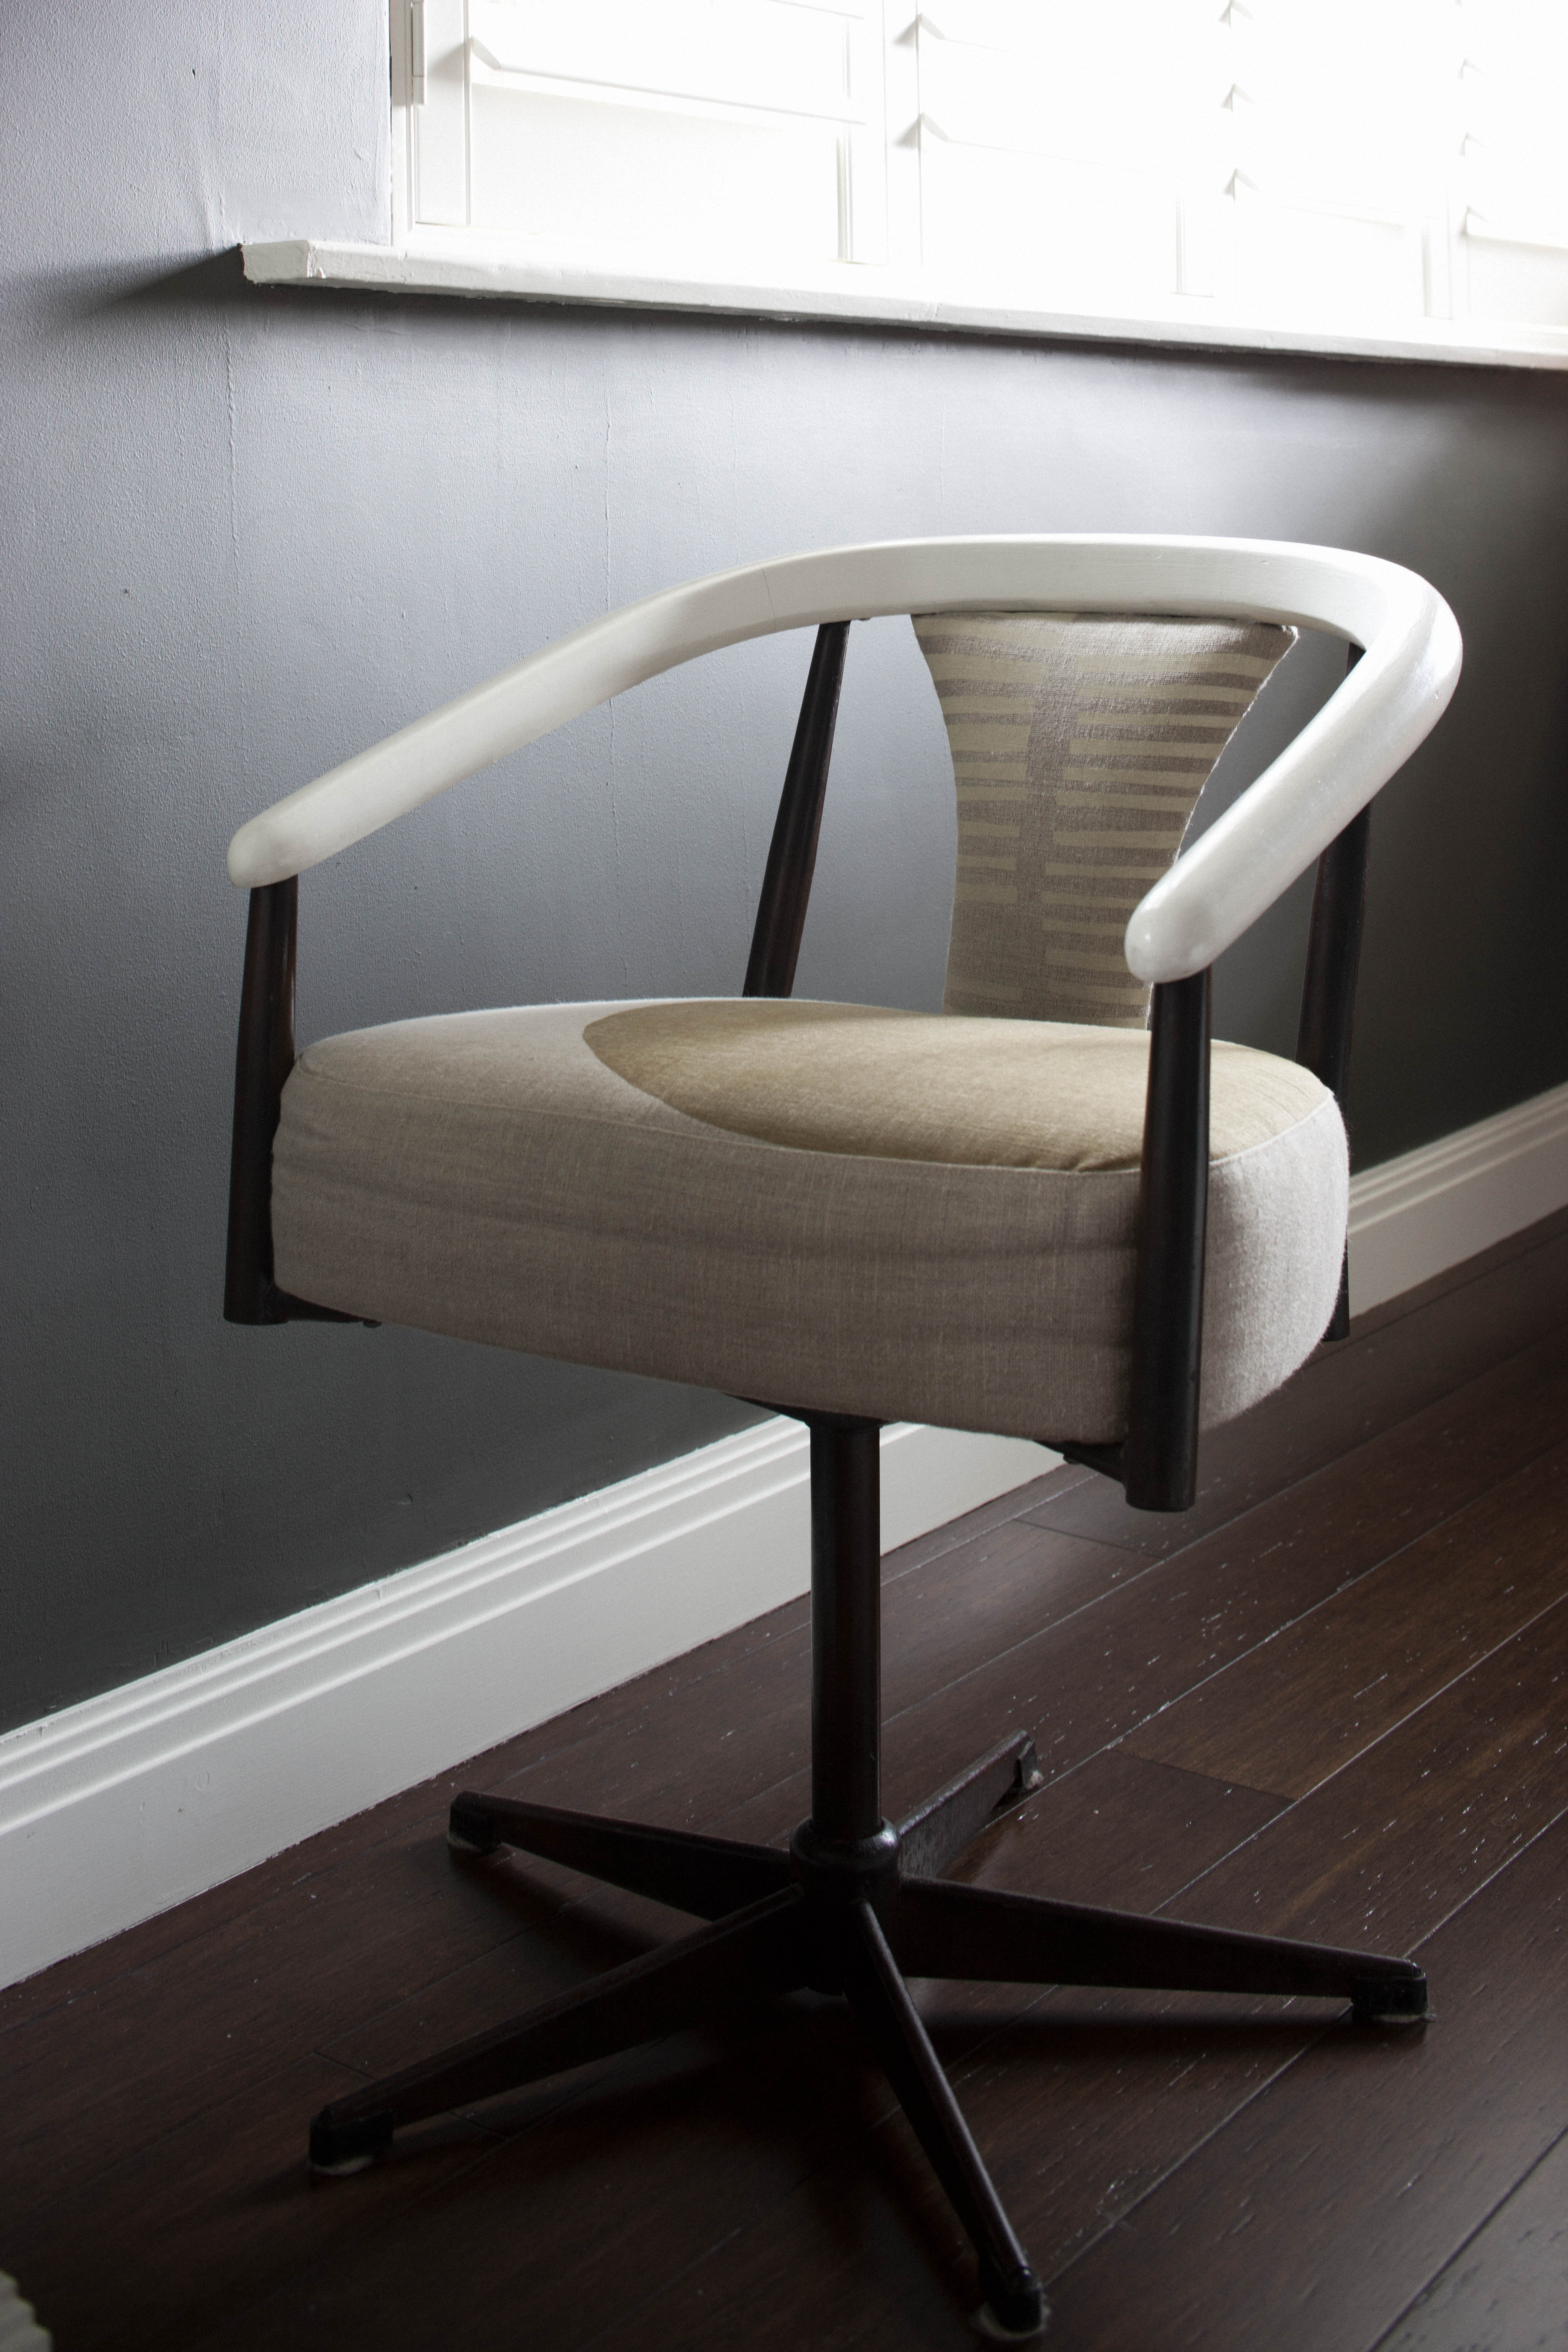 custom-upholstery-in-cloth-fabric-by-kate-connors-interiors